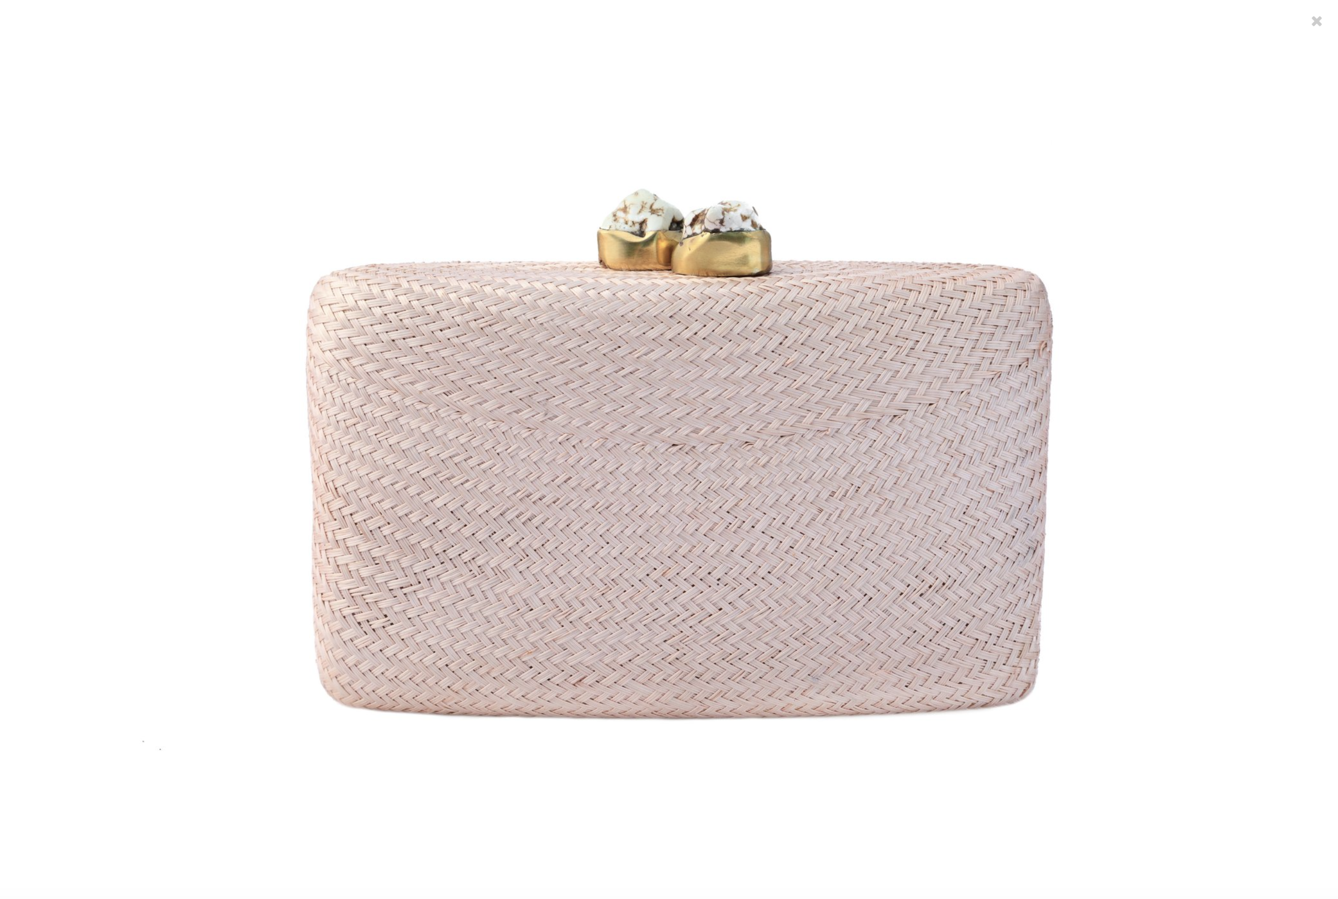 Kayu Jen Clutch with White Stones in Pink